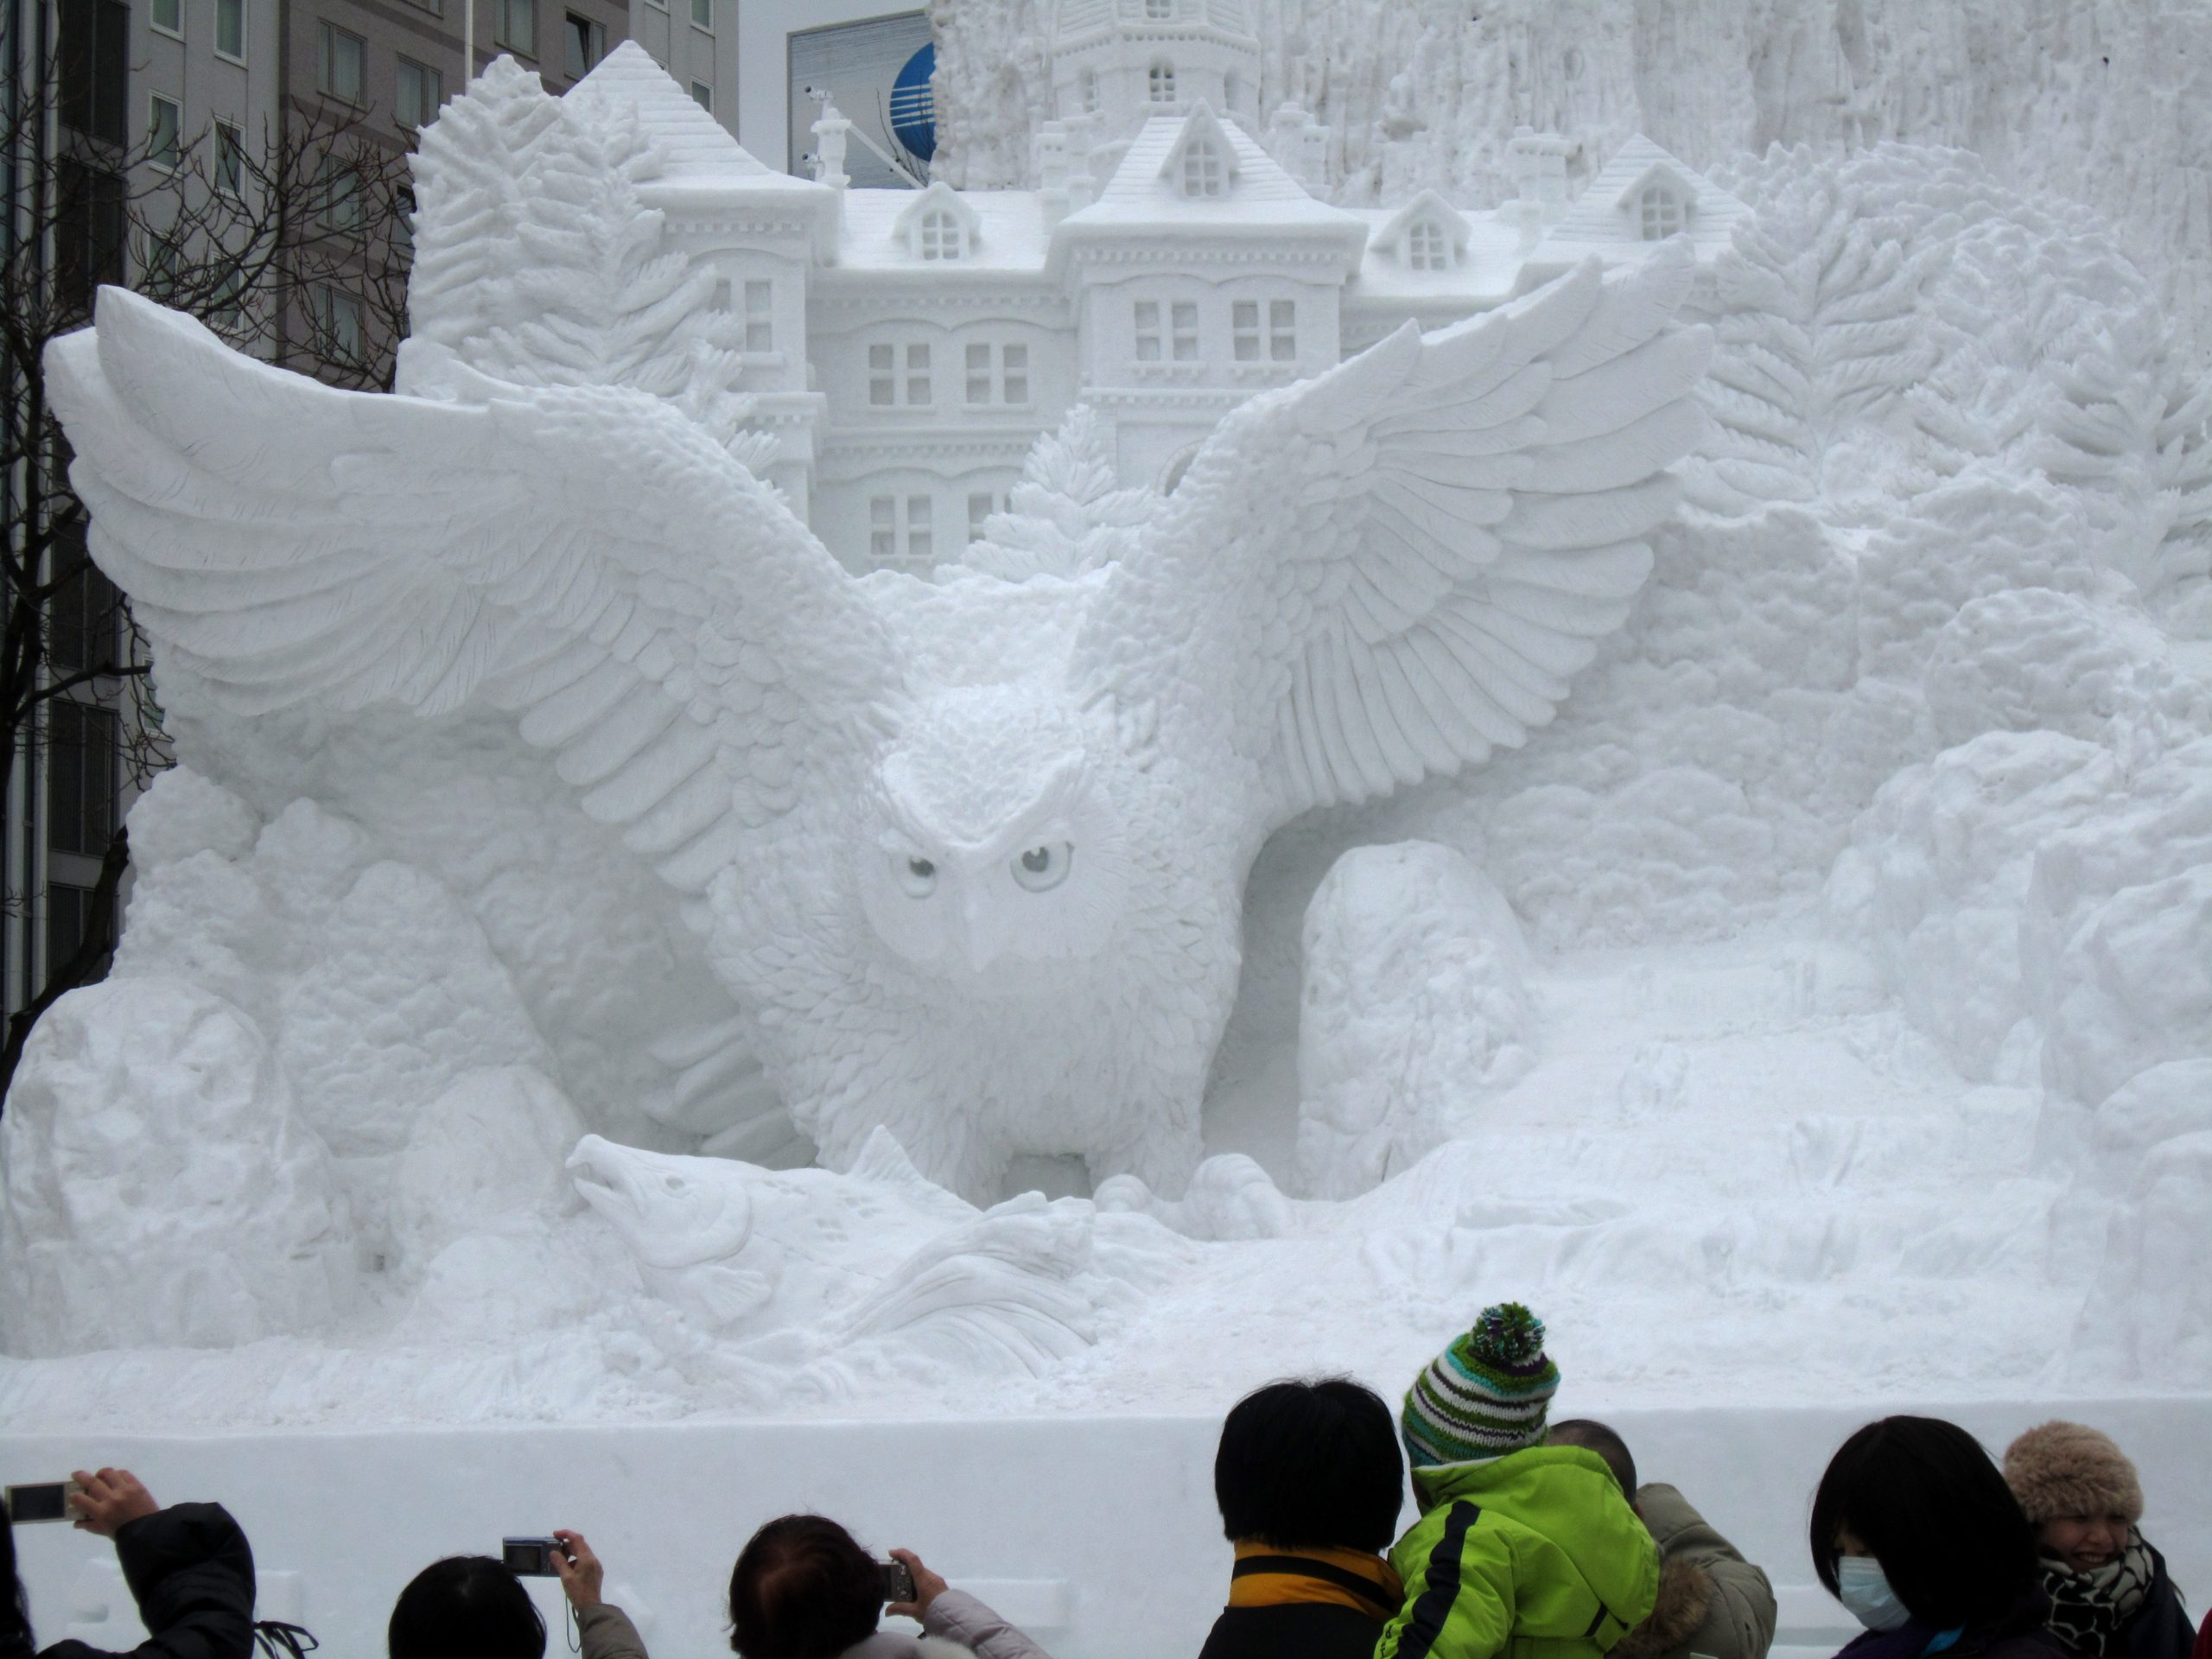 japan tour travel agent holiday winter snow festival